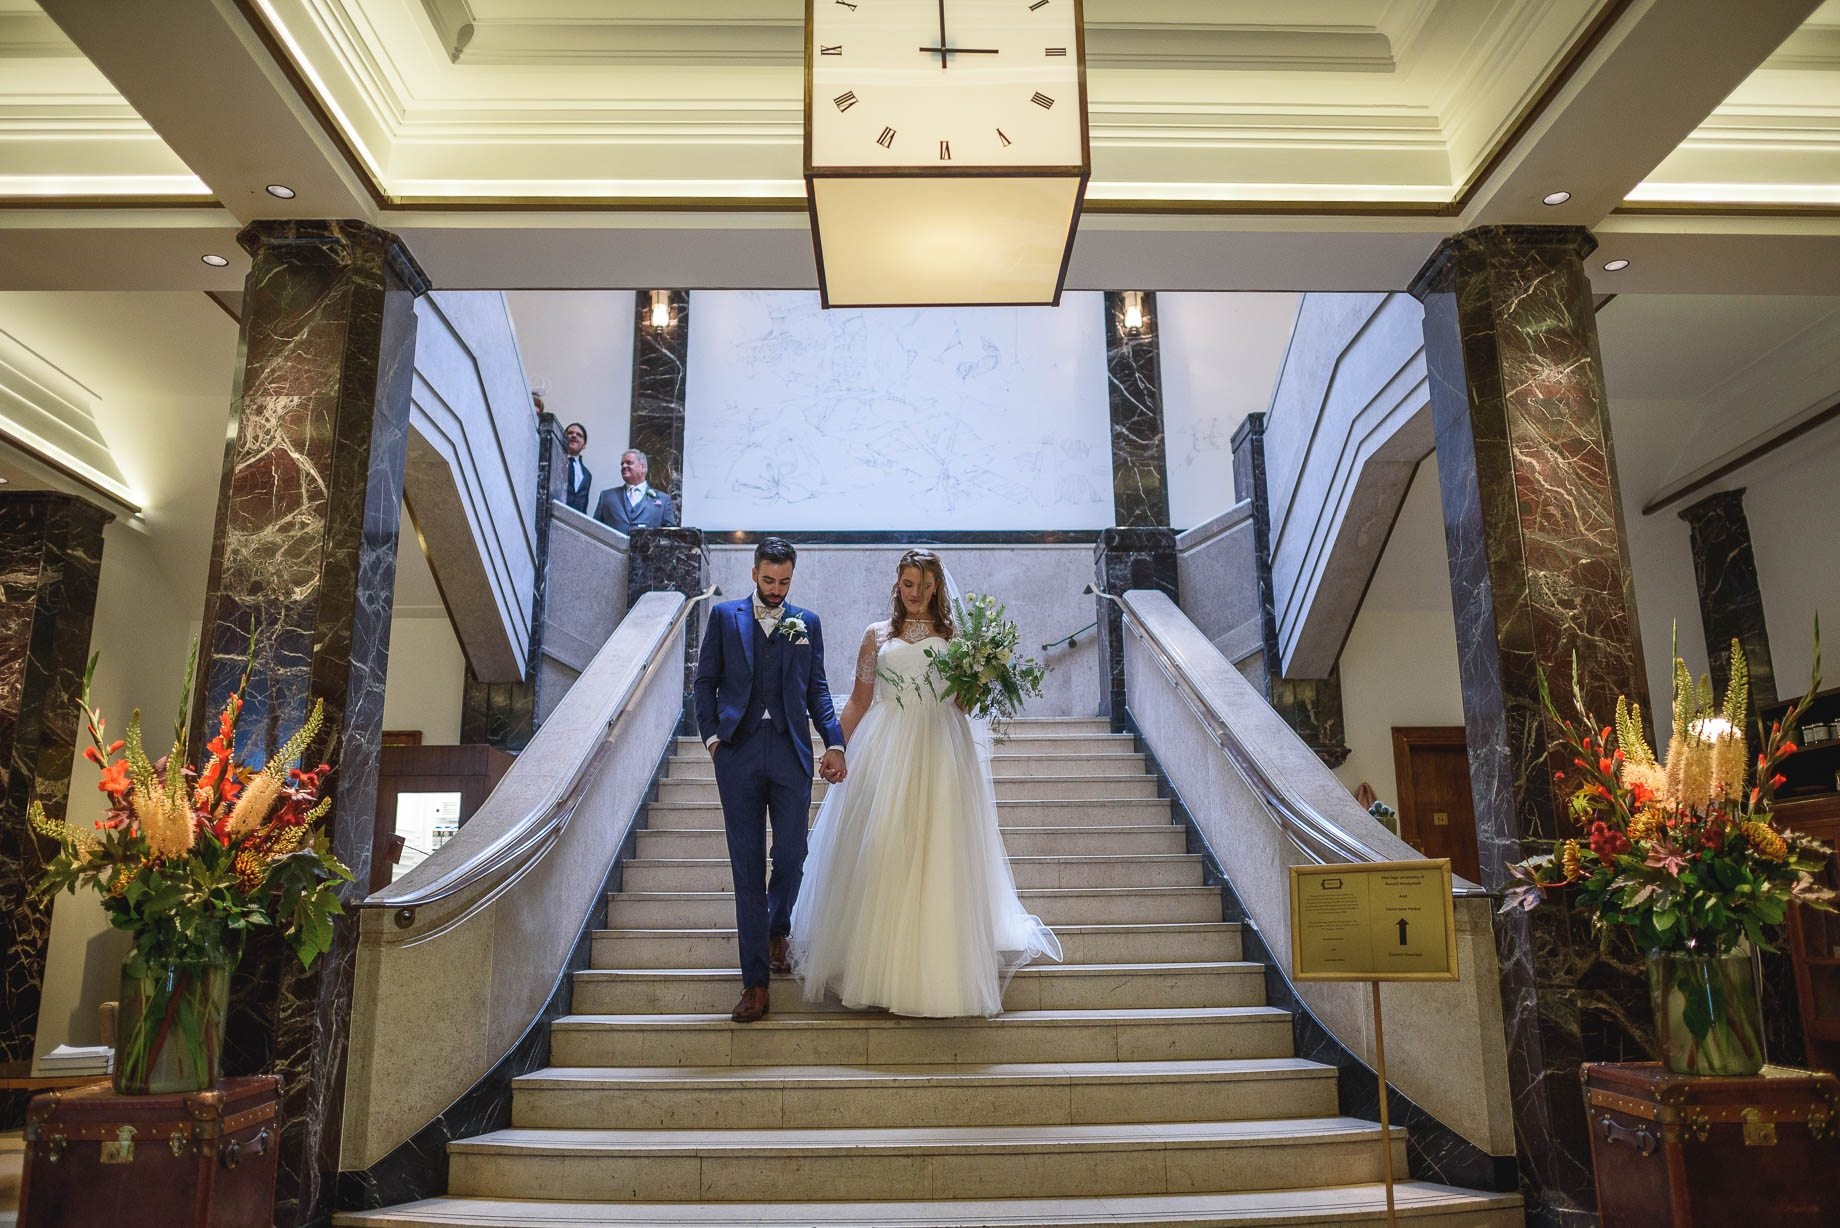 London Wedding Photography - Guy Collier Photography - LJ + Russell (68 of 155)